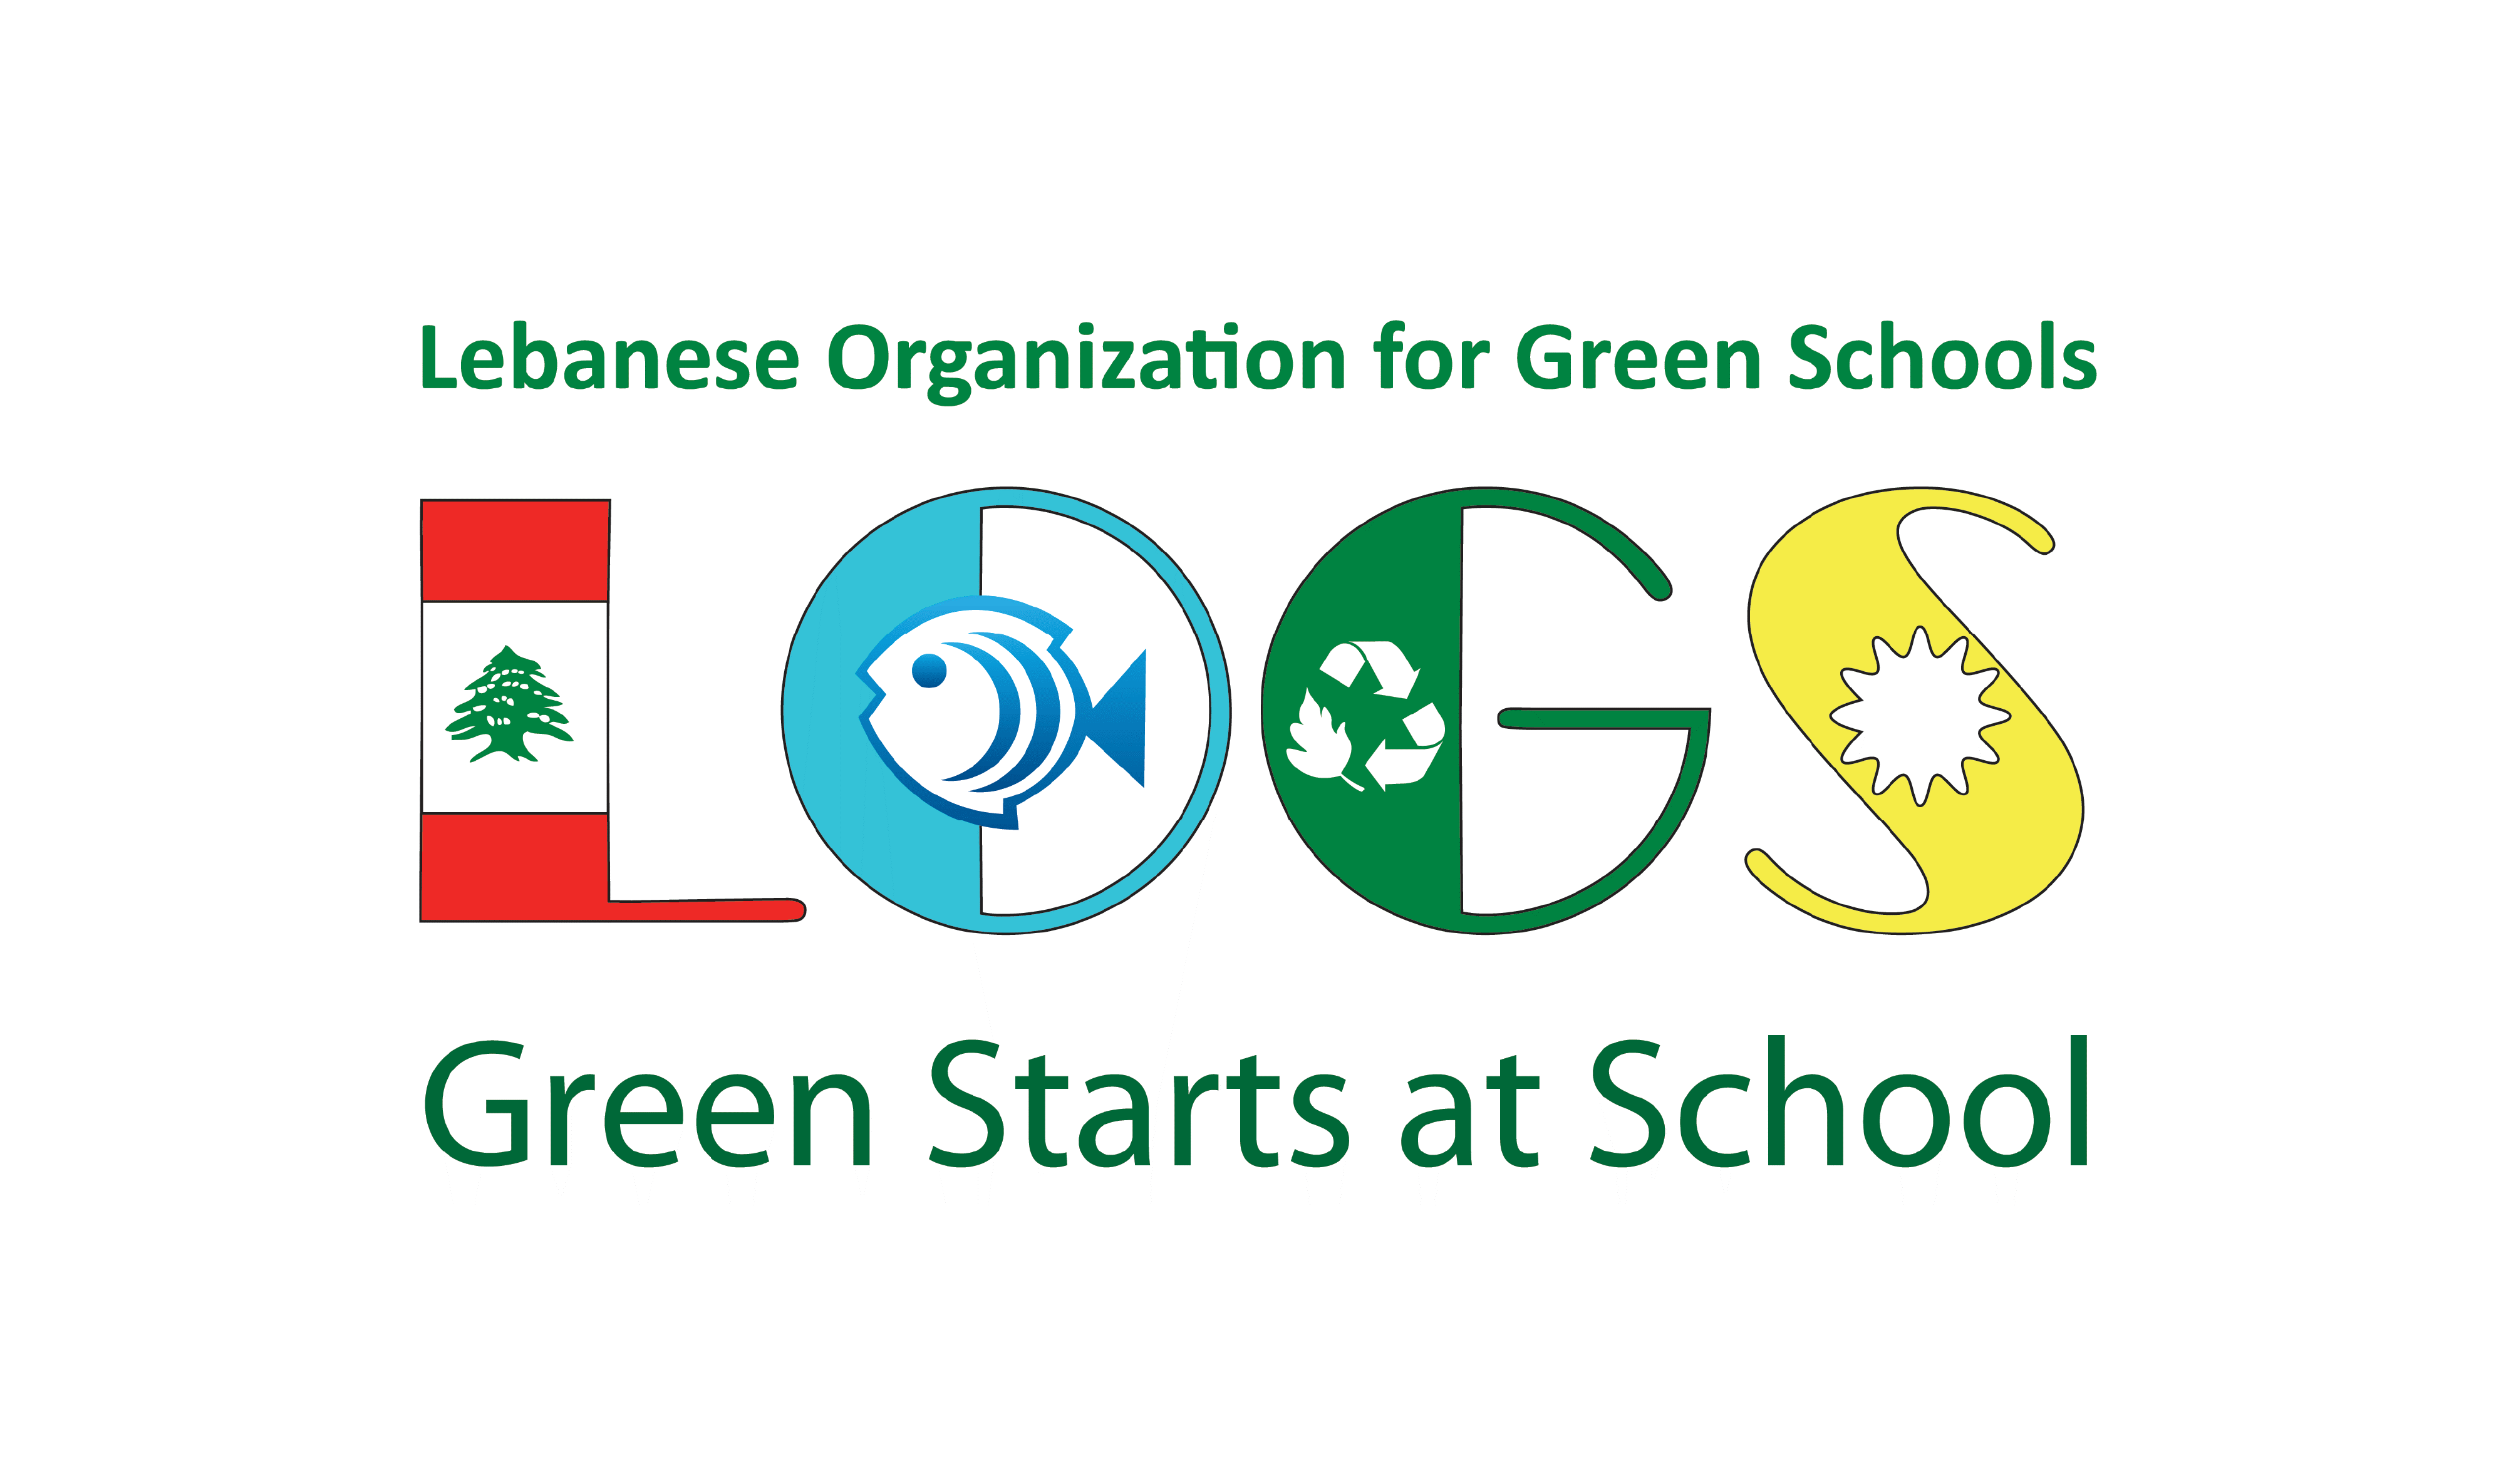 Lebanese Organization for Green Schools